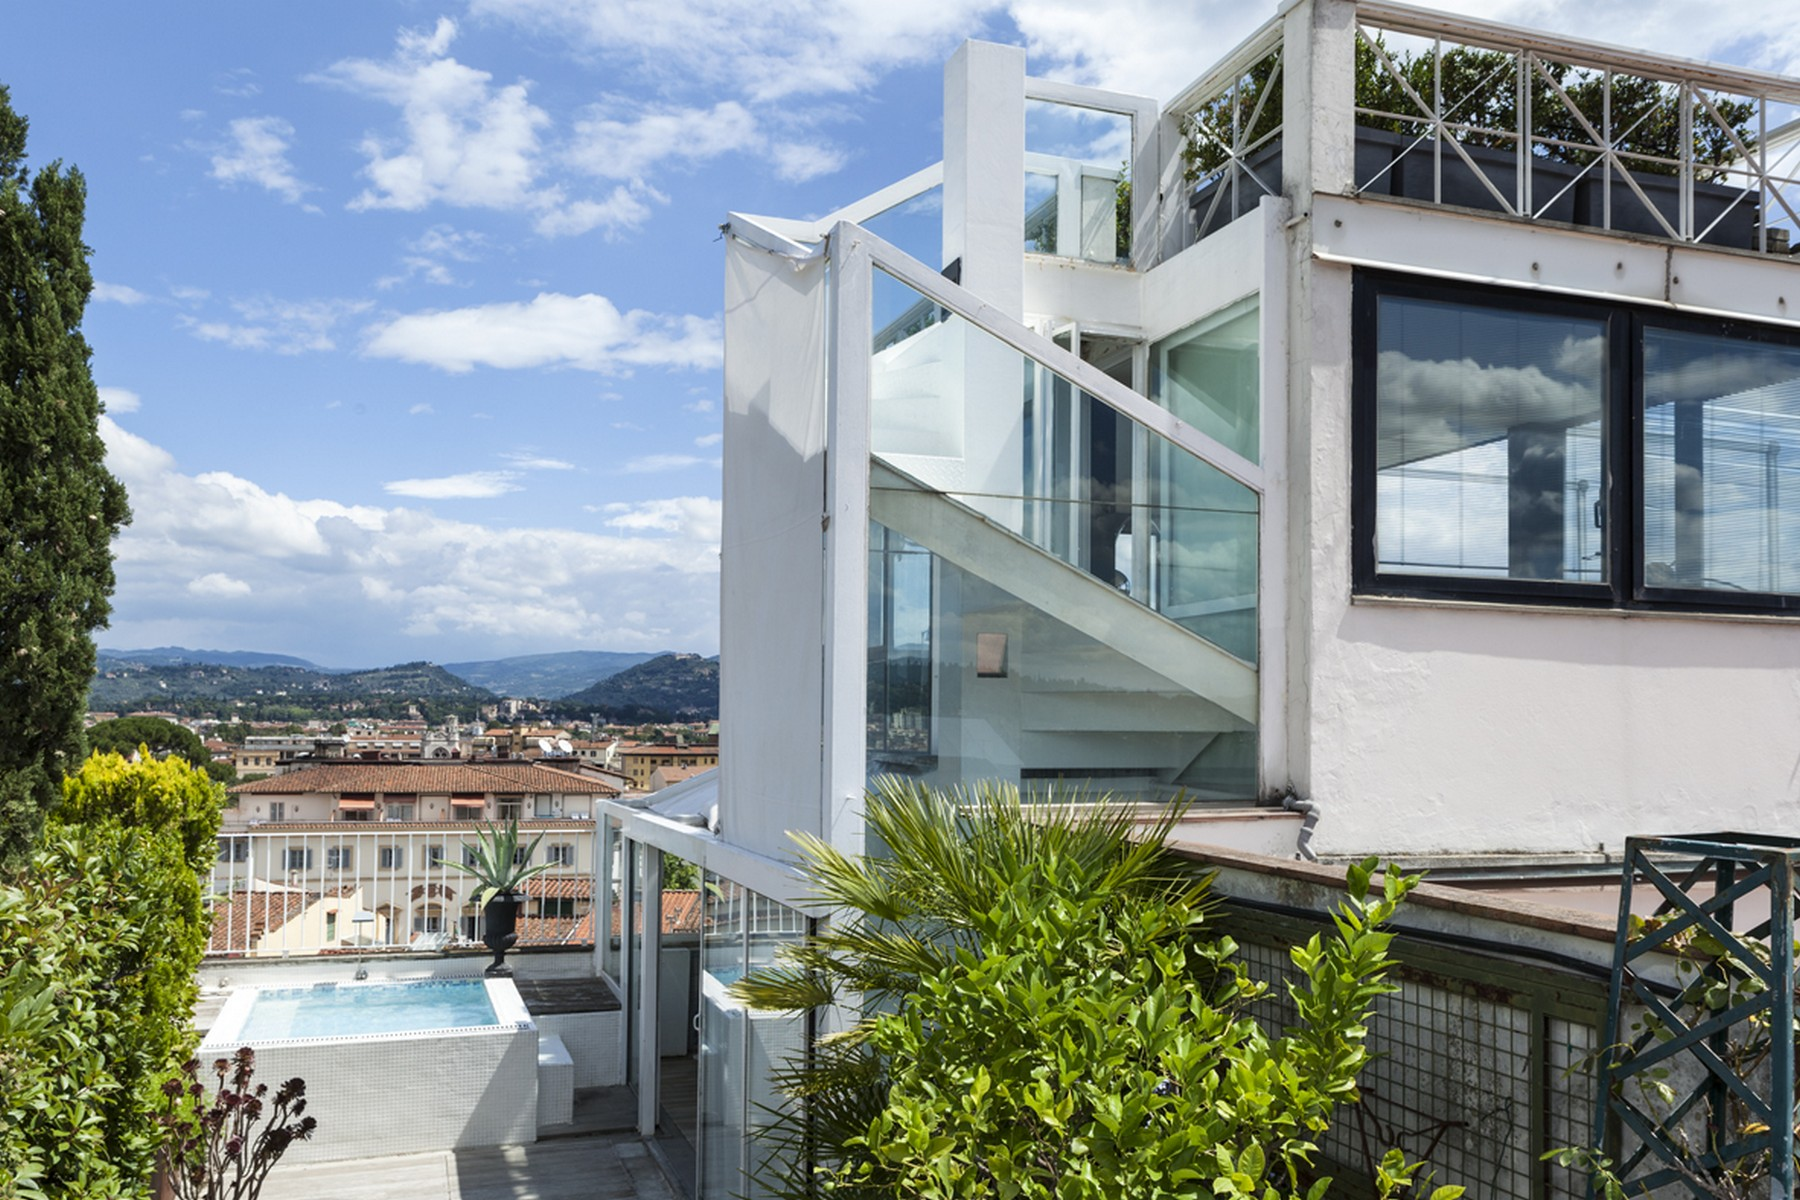 Additional photo for property listing at Stunning penthouse with pool and views over Florence Via Solferino Firenze, Florence 50123 Italia